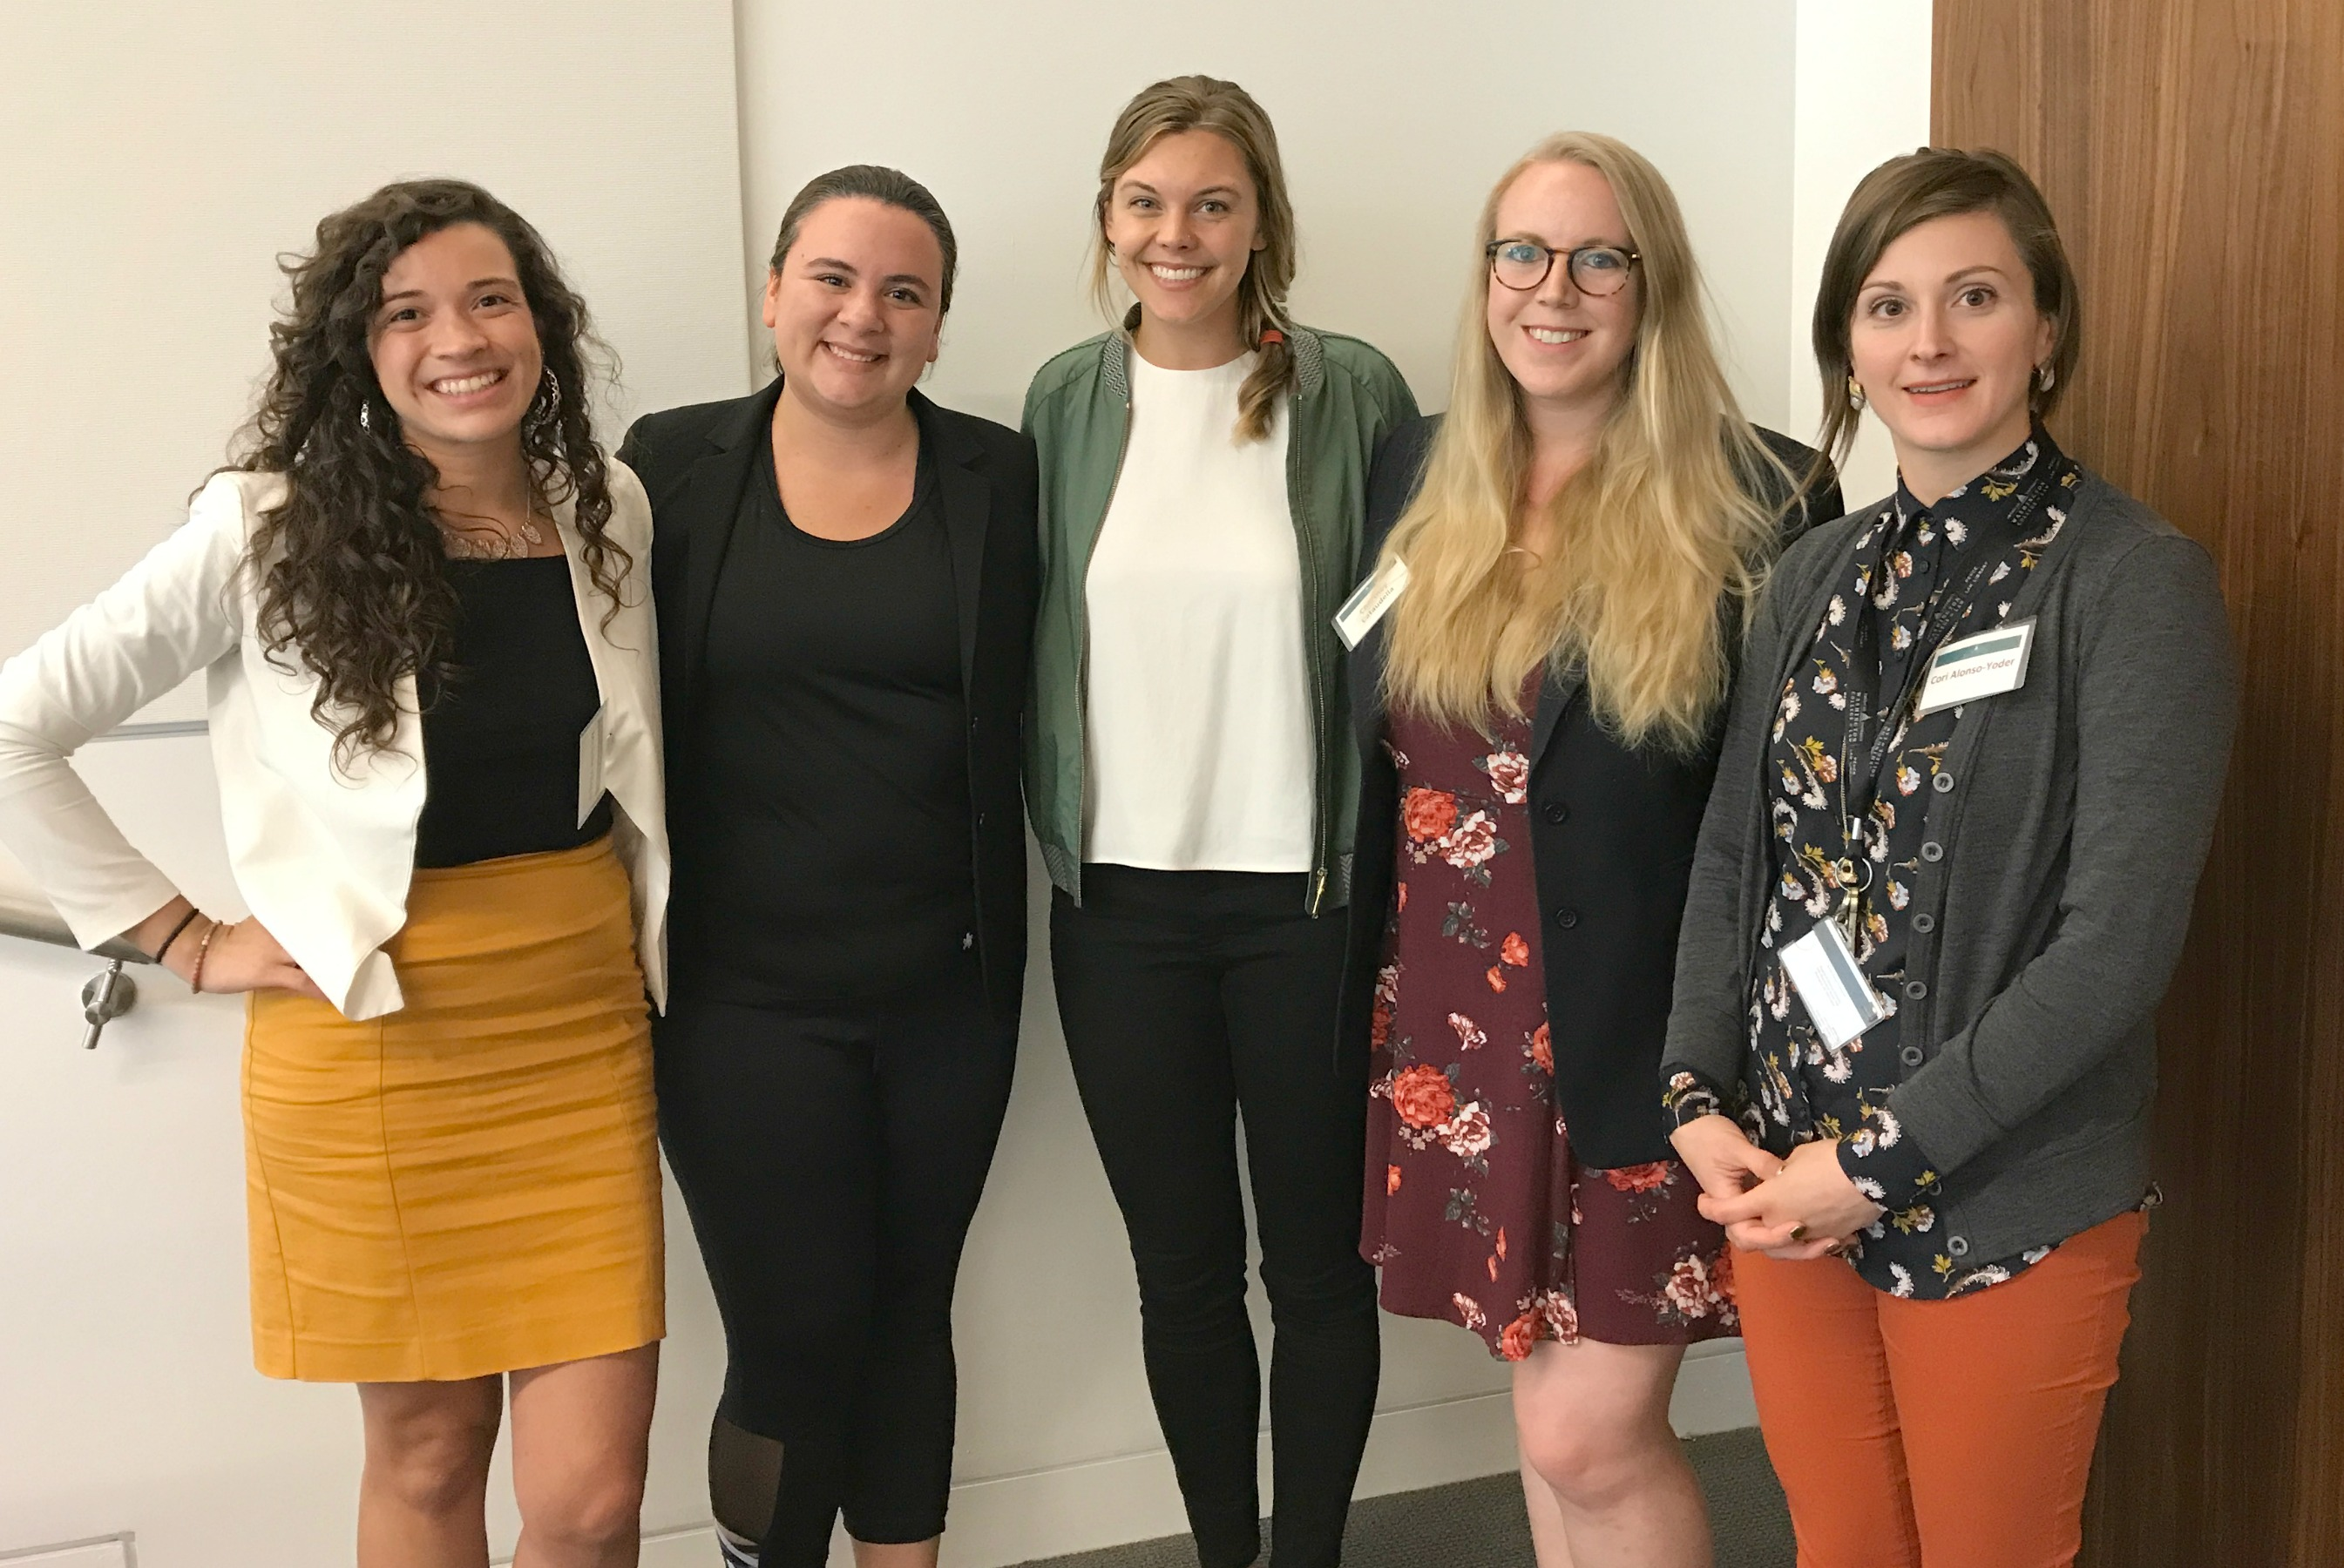 Immigrant Justice Clinic students Michelle Villegas, Brianna Lozito, Katie Conway, and Courtney Cataudella with Professor Cori Alonso-Yoder.